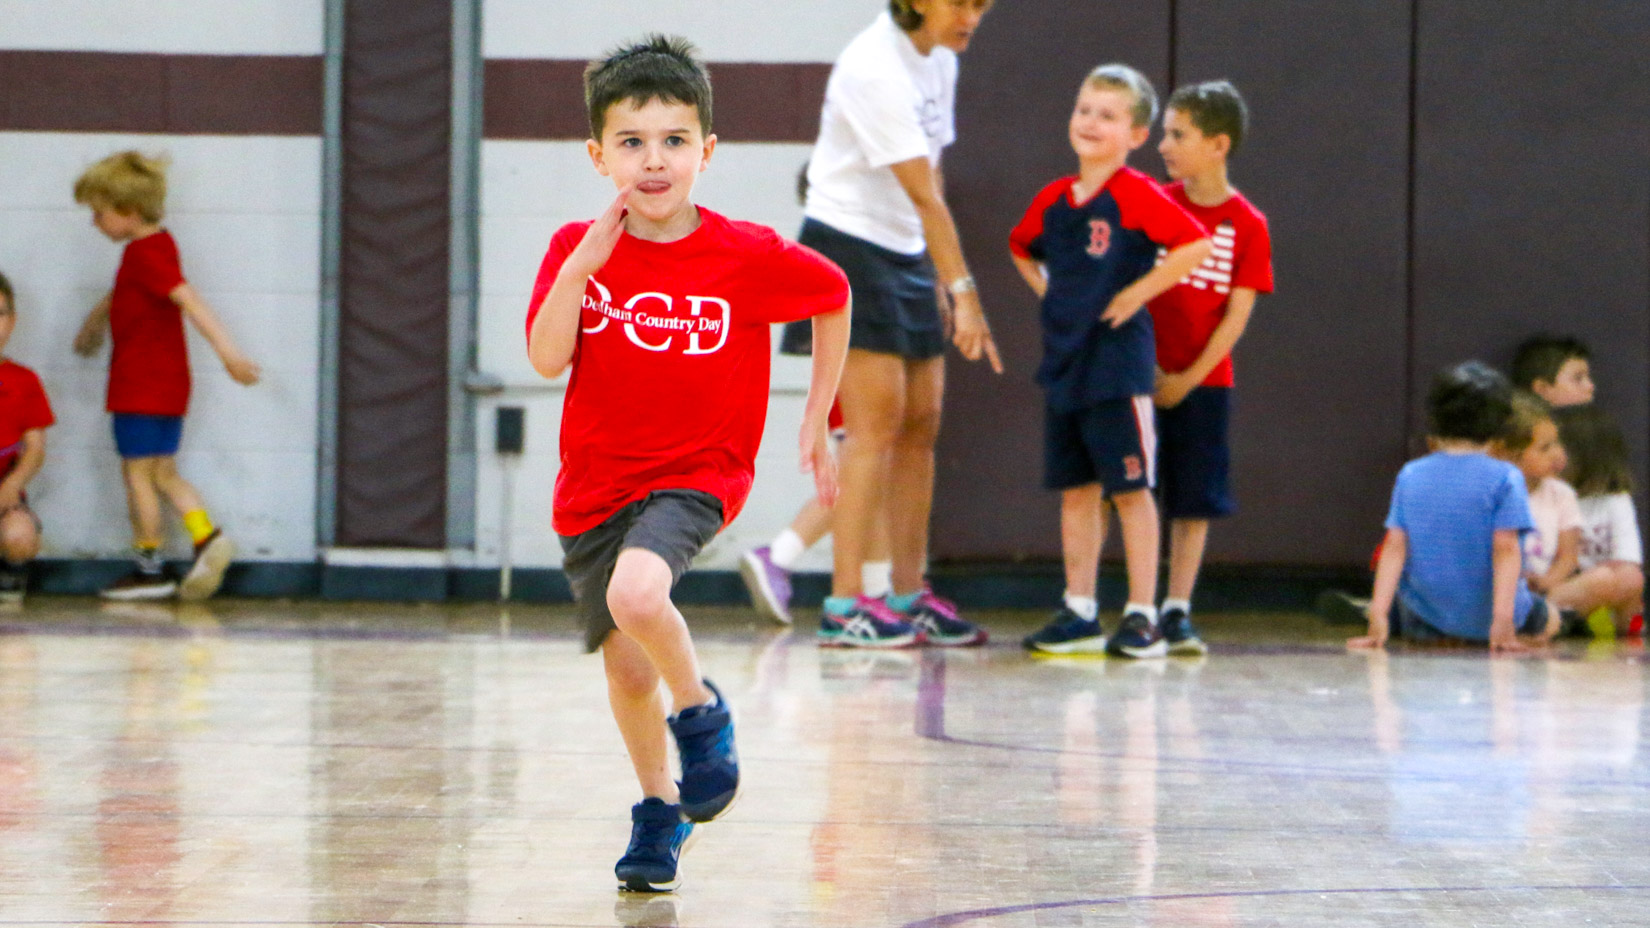 A student running in the gym.